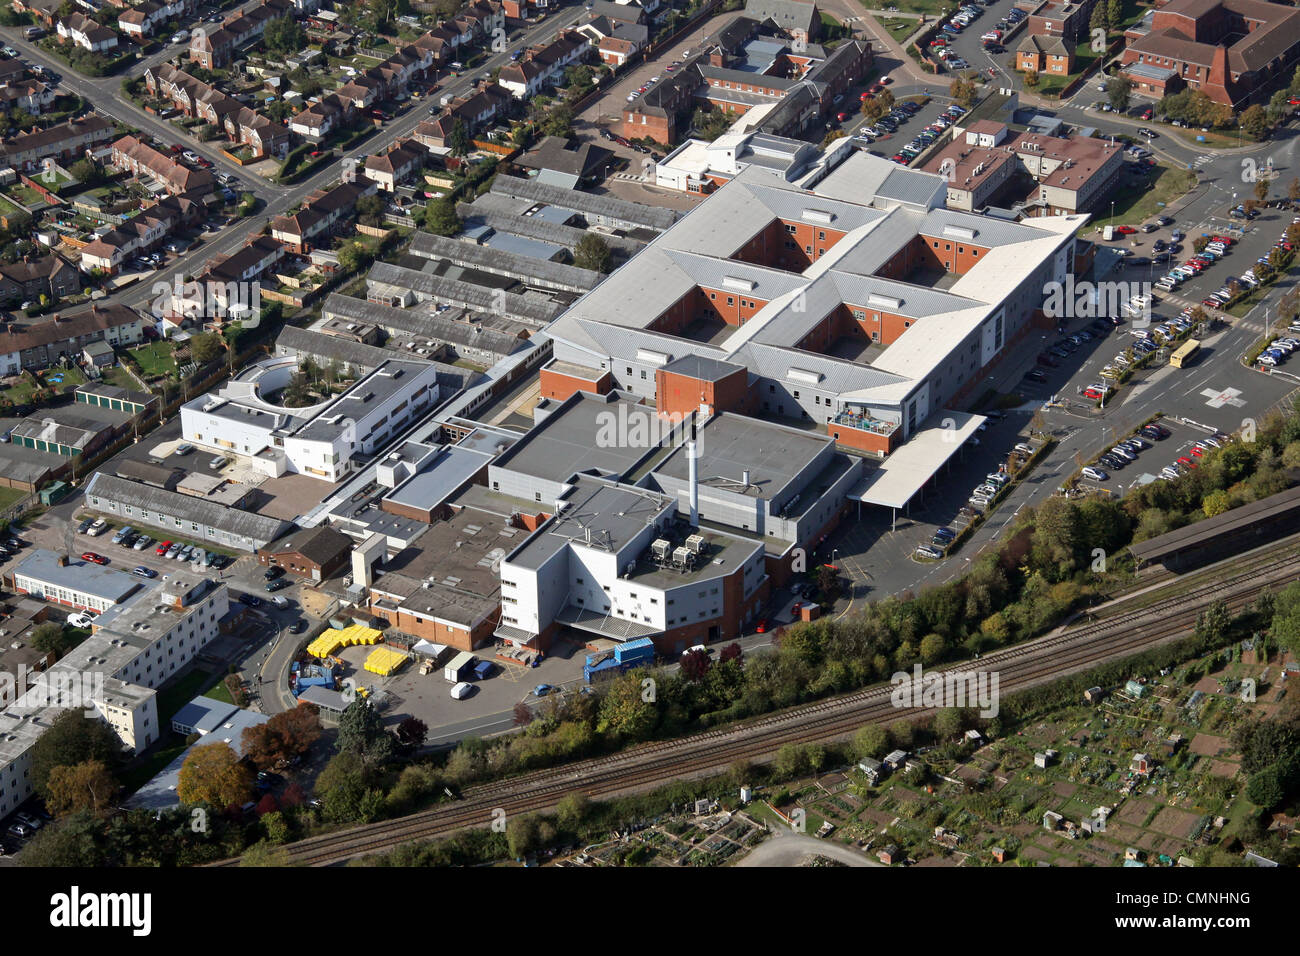 aerial view of the County Hospital Hereford - Stock Image